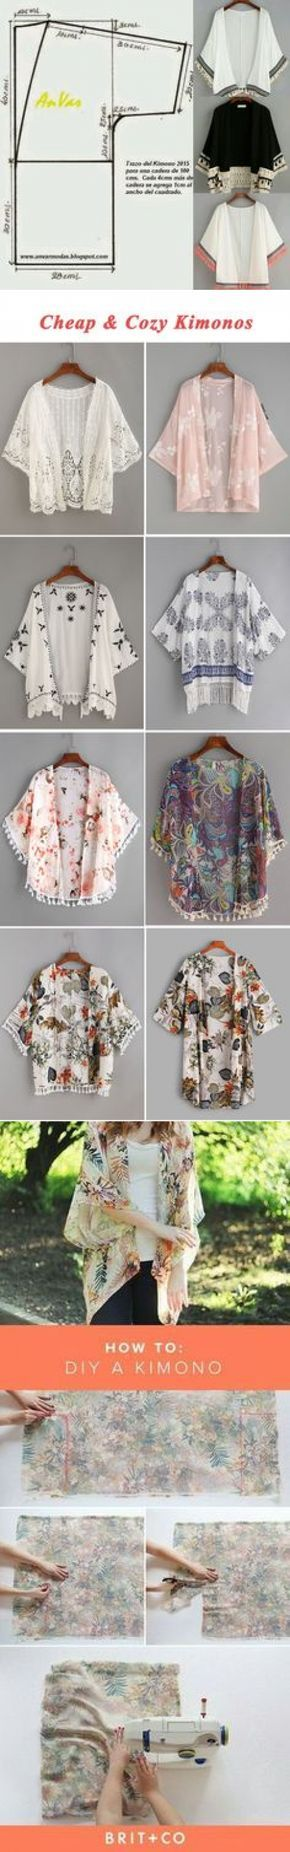 Pinterest | Schnittmuster | Pinterest | Kimonos, Sewing projects and ...